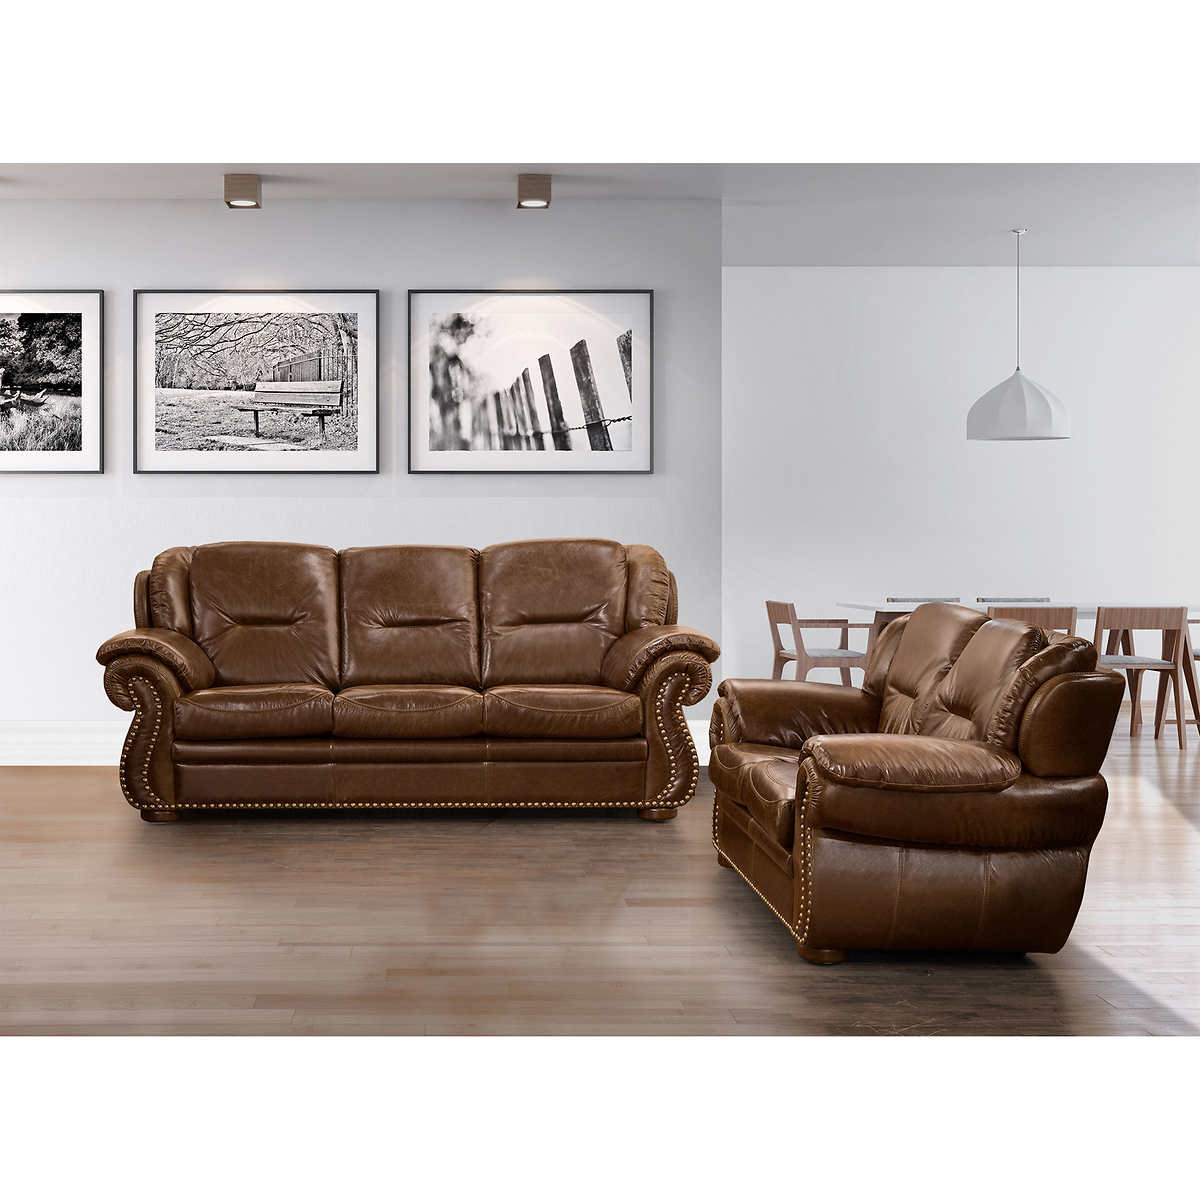 Living Room With Brown Leather Couch Sofas Loveseats Costco